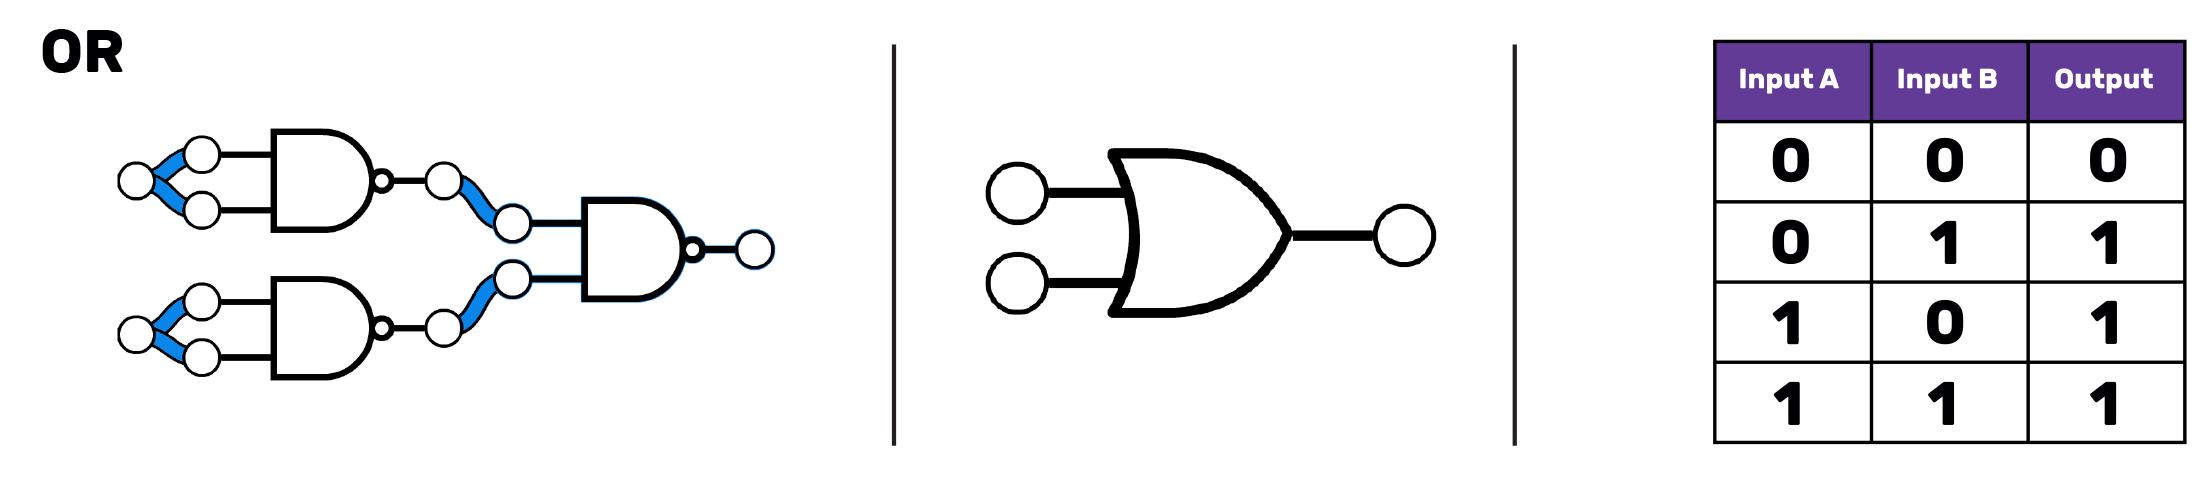 "On the left, three NAND gates arranged so that the outputs of two of the NAND gates form the input for the third. The two ""input"" NAND gates each have their two inputs connected together, so there are only two inputs in total to the circuit. In the middle, the OR gate symbol. This is like a D with the left-most straight line turned into a curve that goes further in to the D, and the right-most part of the D change to be a point. Two inputs come into this from the left and one output goes out to the right, all represented as circles connected to the rest of the symbol with horizontal lines. On the right, a truth table with three columns, labelled ""Input A"", ""Input B"" and ""Output"". The first row reads 0 0 0, the second 1 0 1. The third row reads 0 1 1 and the final row 1 1 1"